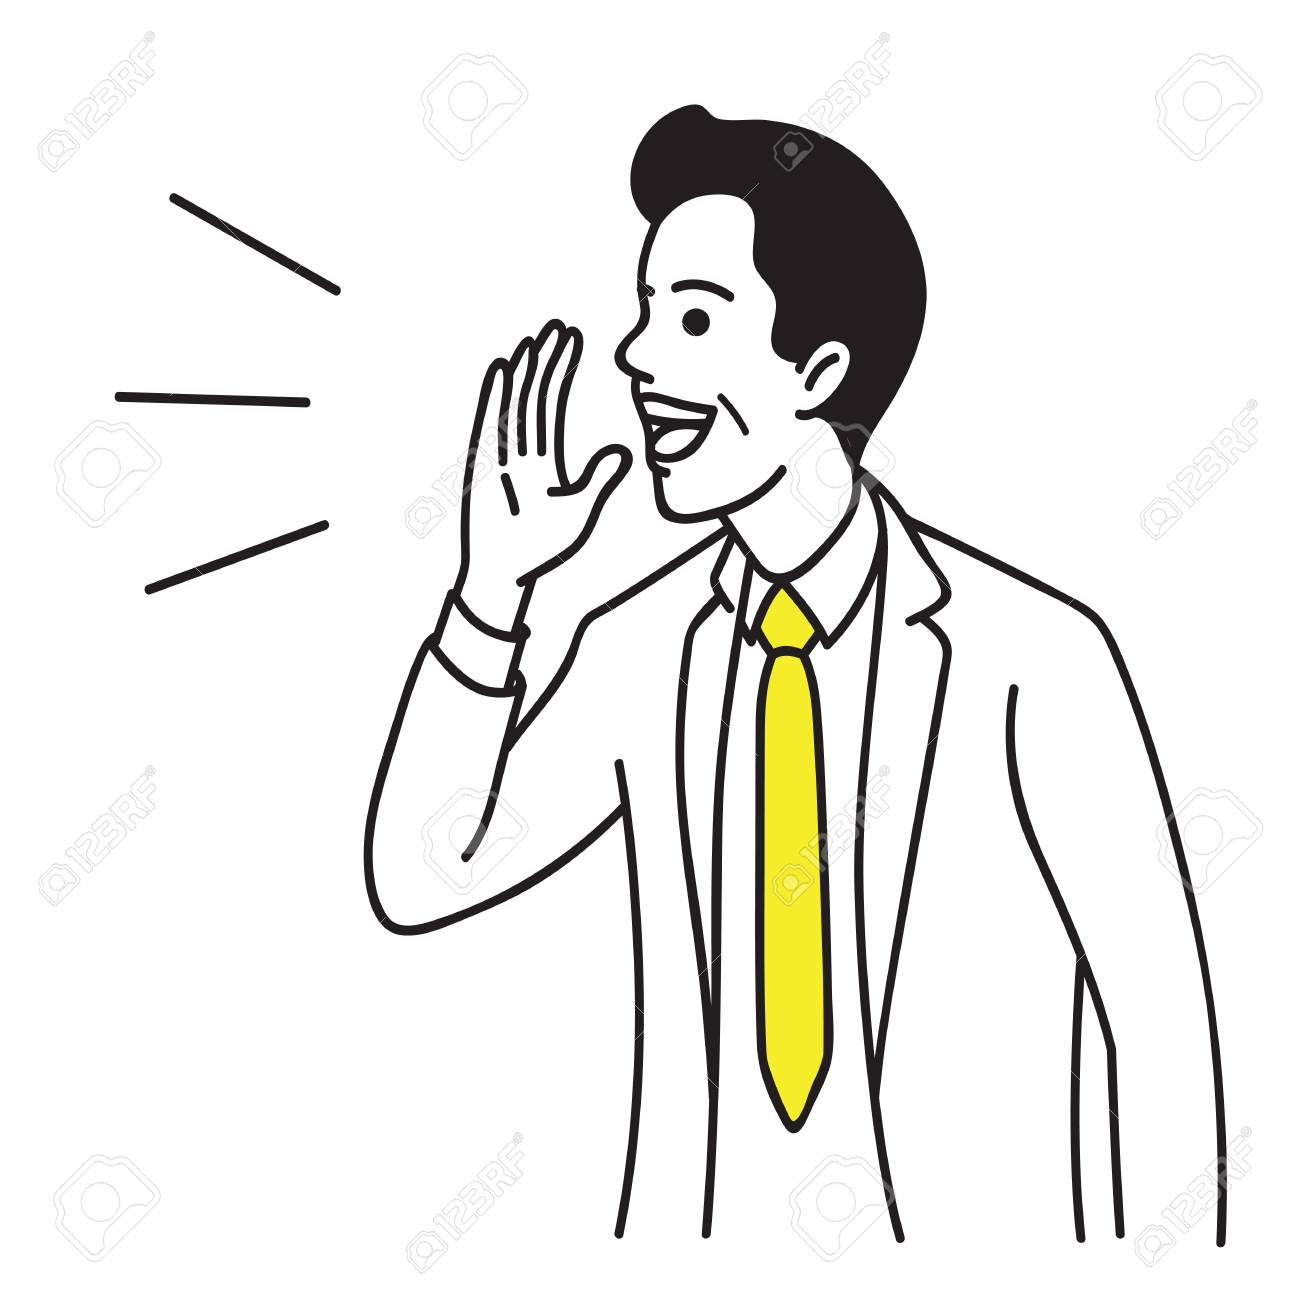 Vector illustration portrait character of businessman raise hand near mouth. Shouting, talking and speaking. Hand drawn sketch design, simple style. - 90618814